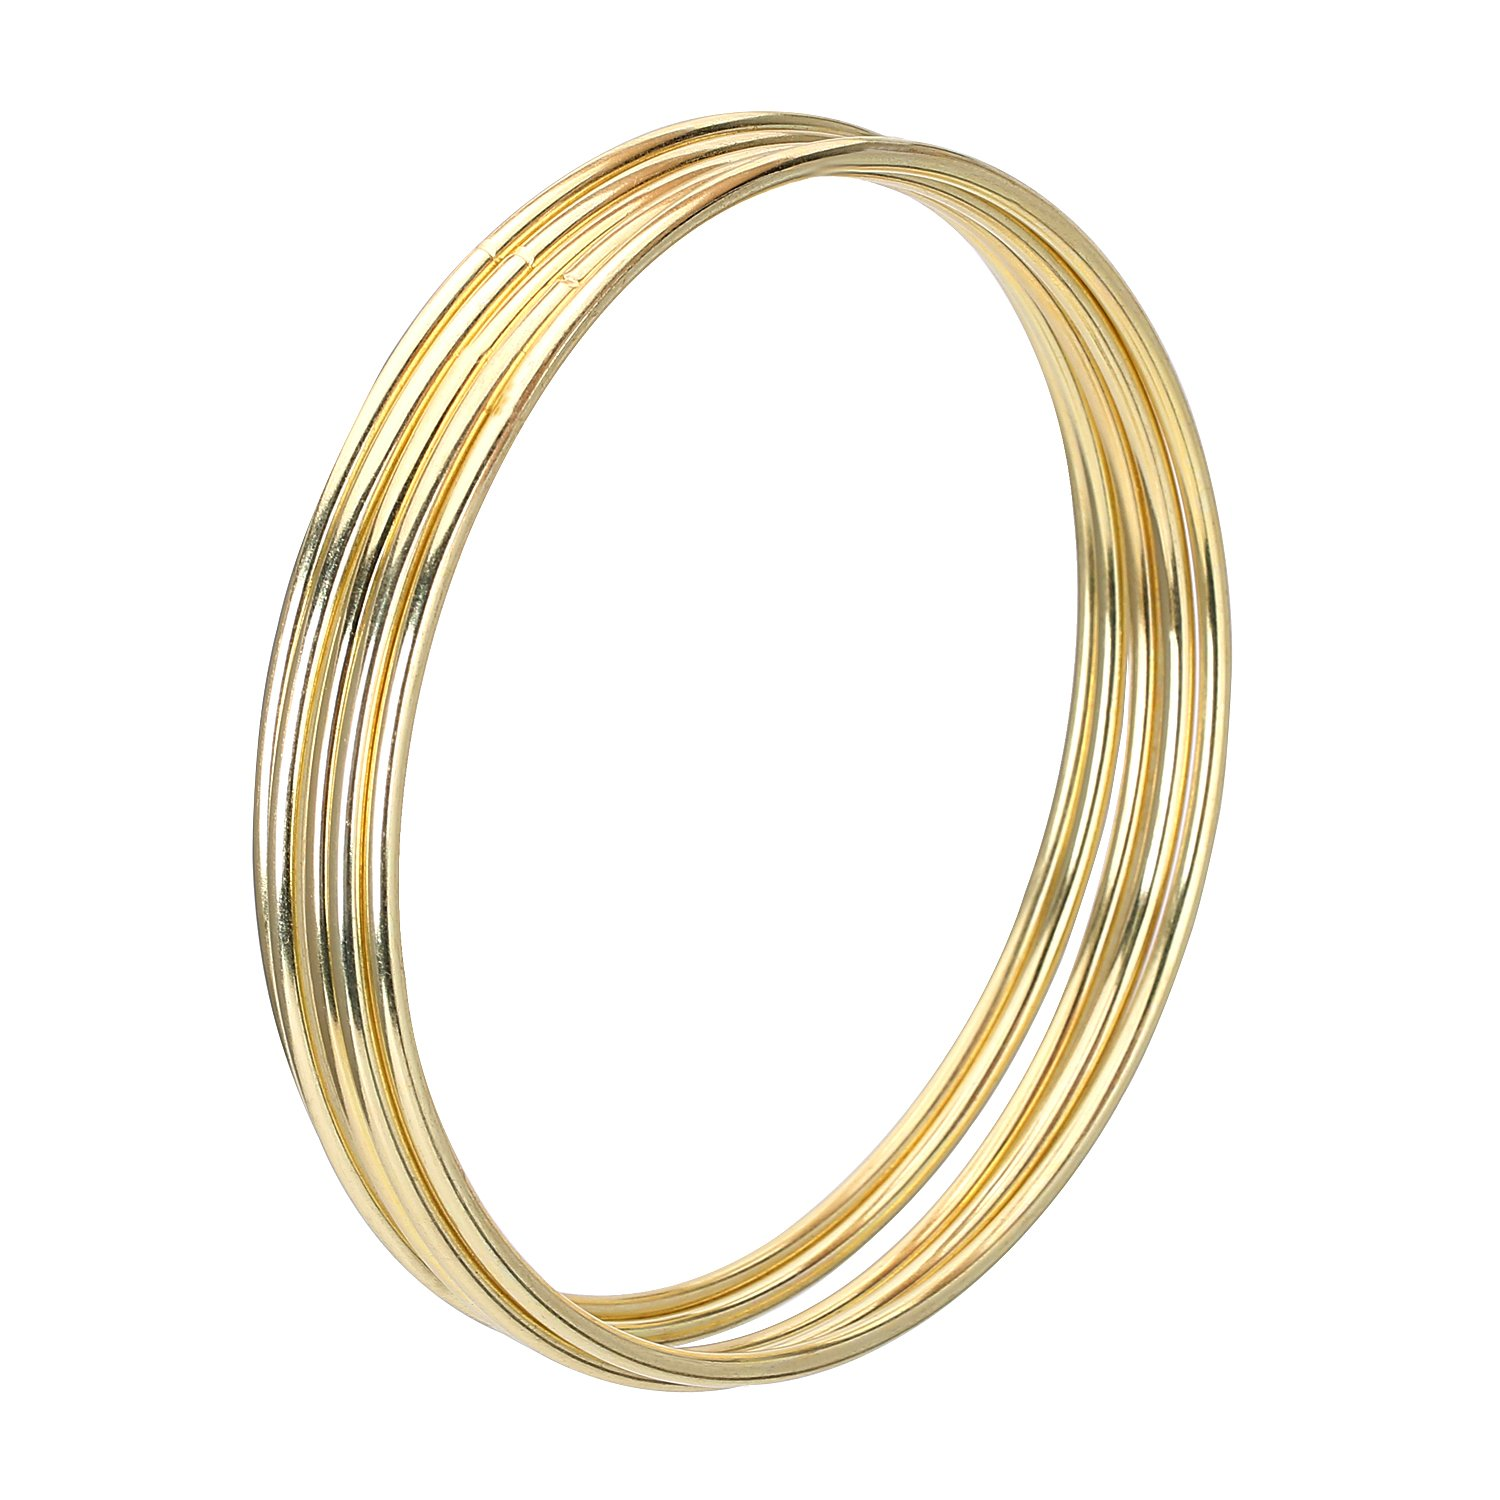 6-Pack Realeather Crafts Zinc Metal Rings 3-Inch